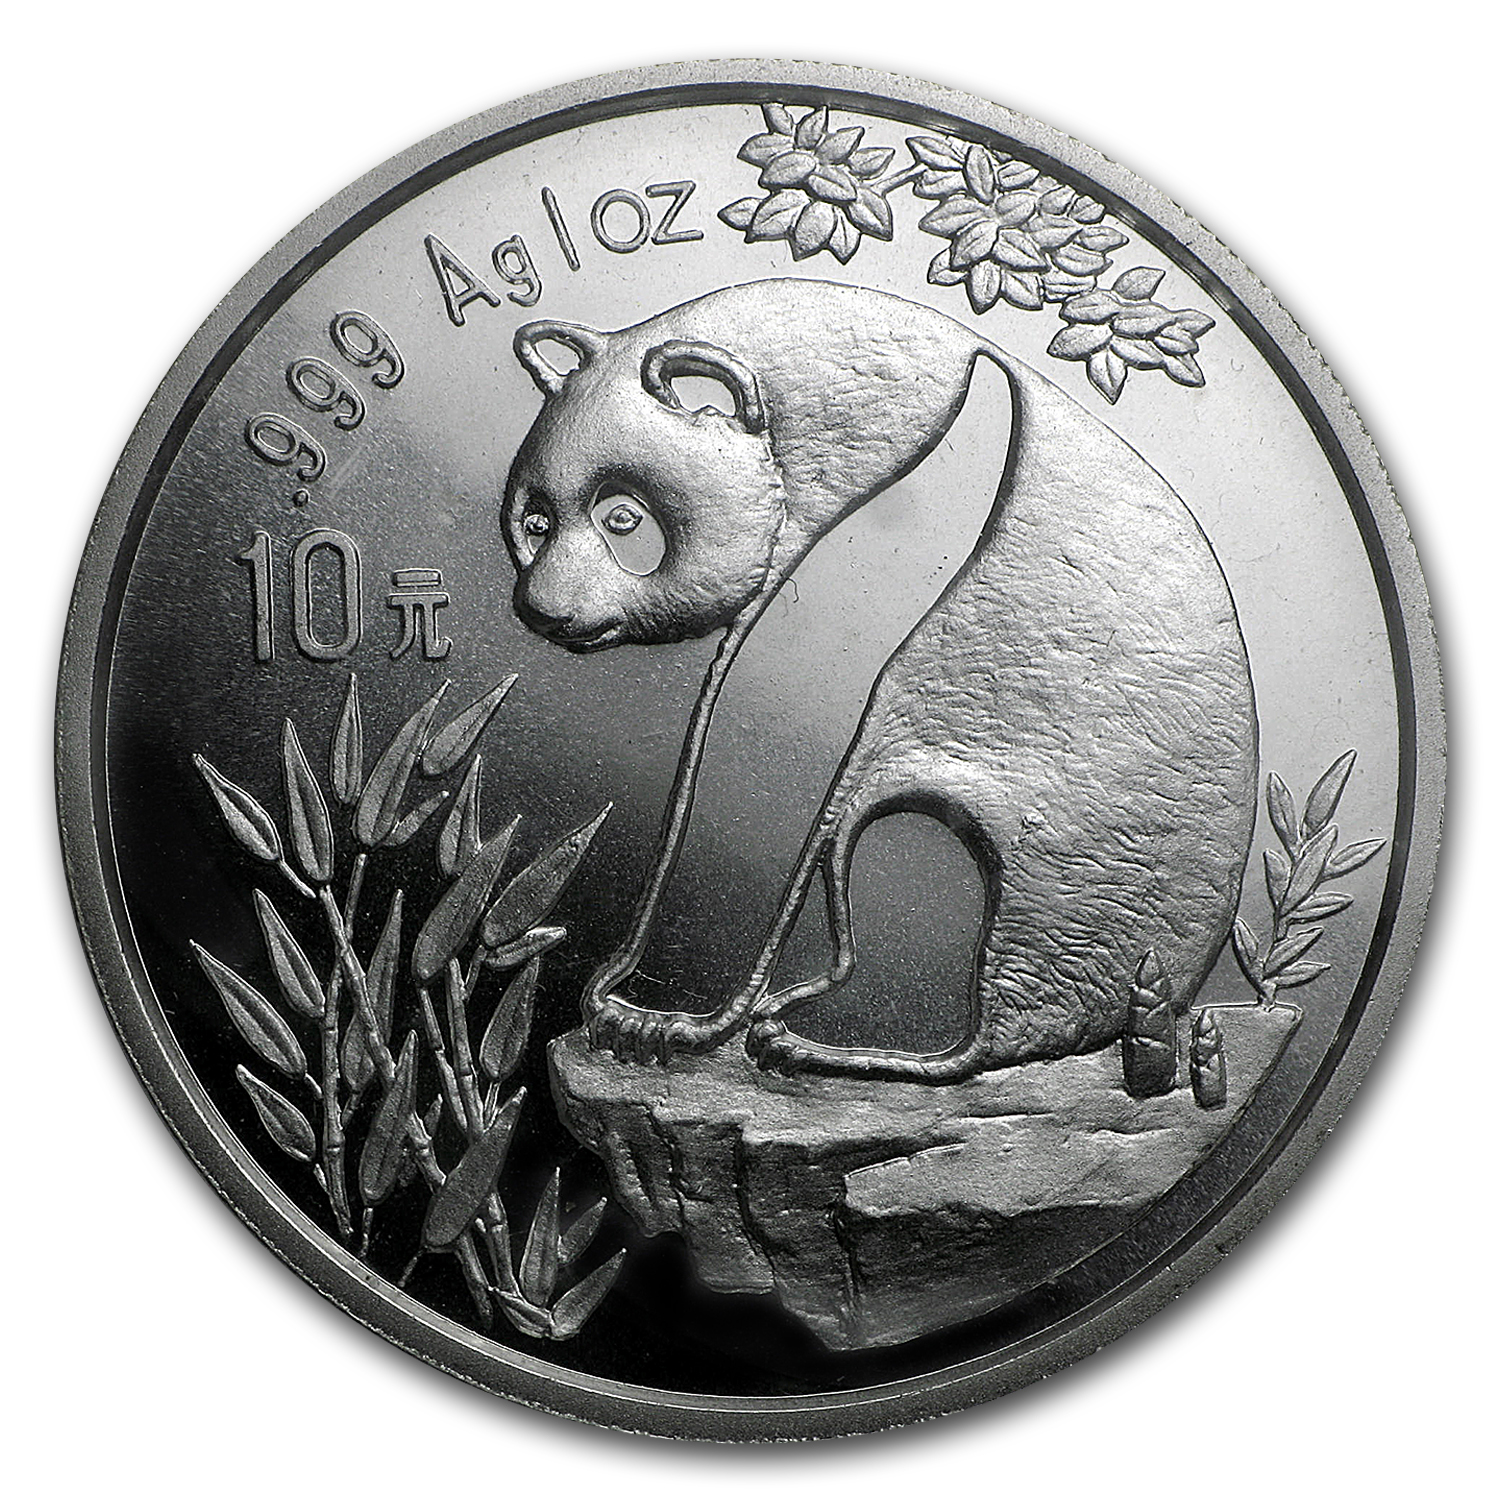 1993 China 1 oz Silver Panda Large Date BU (Sealed)